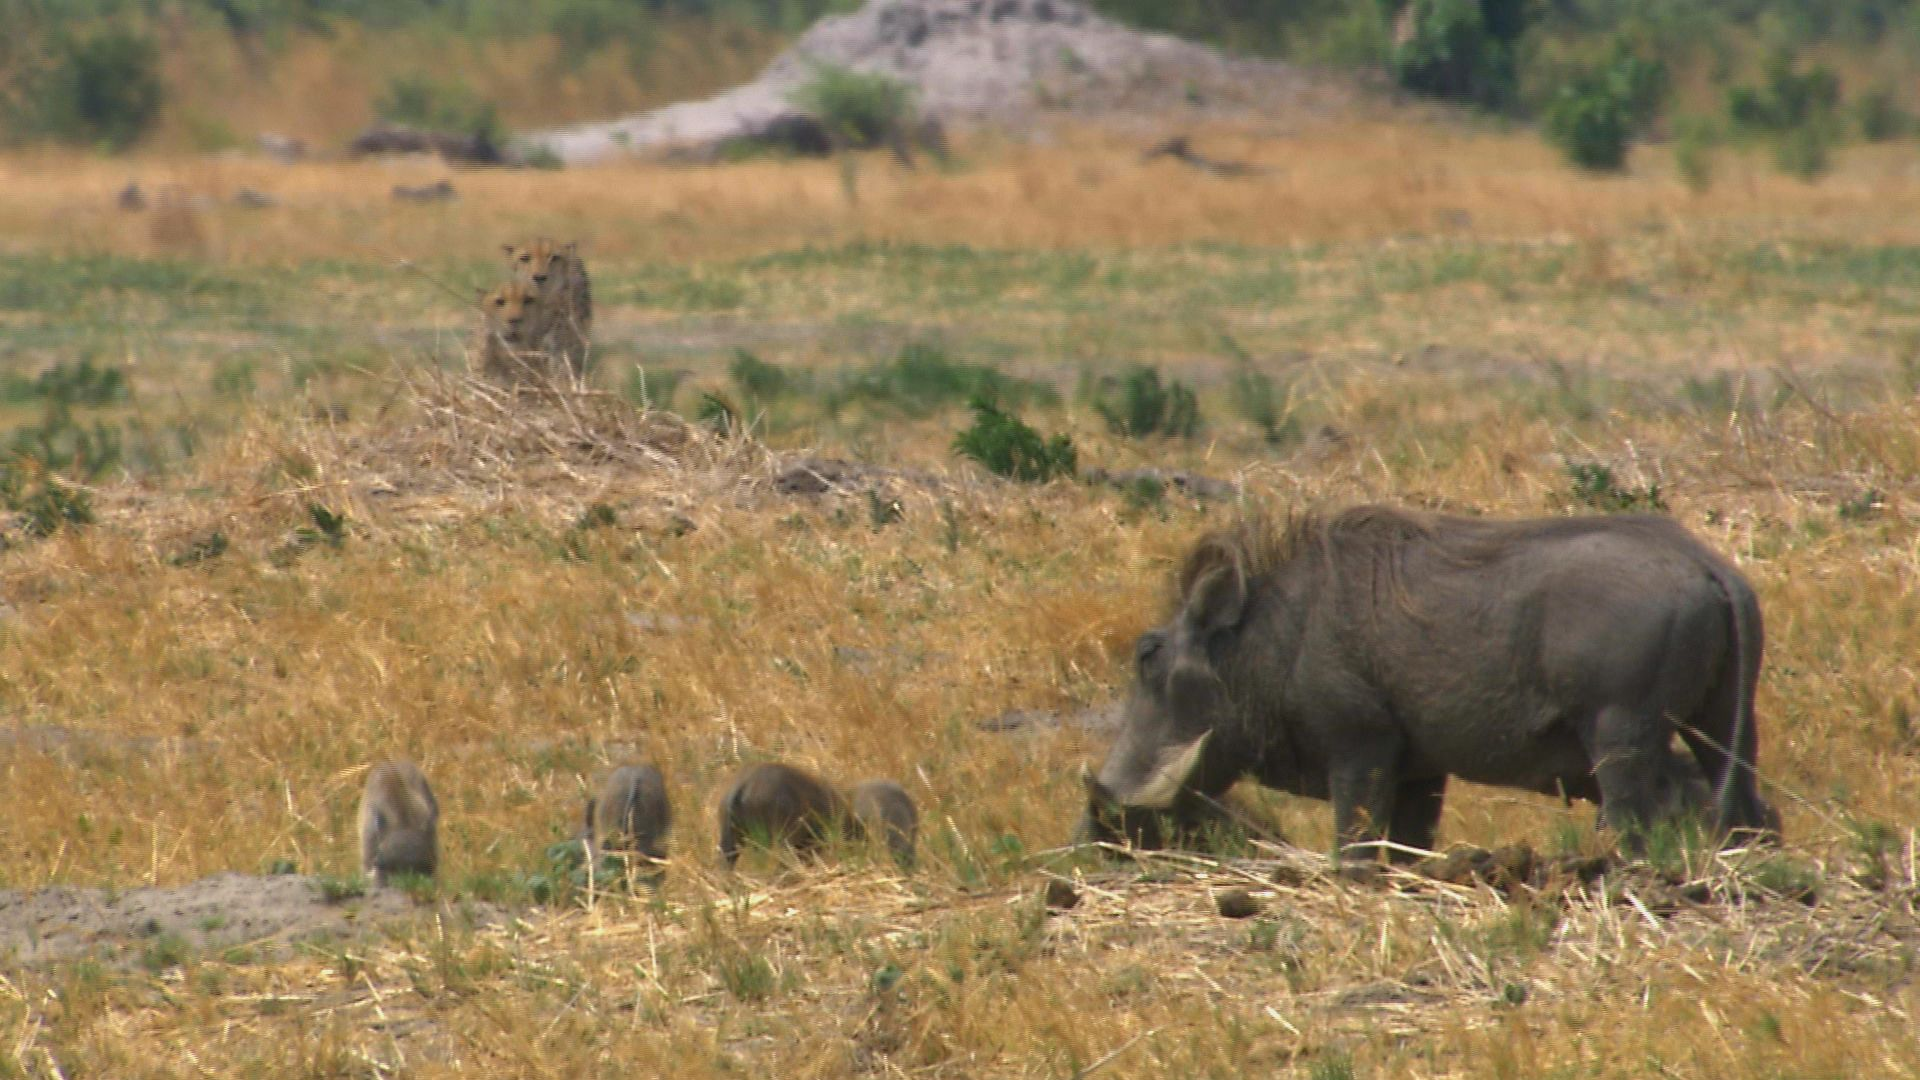 Mother common warthog (Phacochoerus africanus) with piglets, being stalked by two cheetah... [Photo of the day - September 2021]